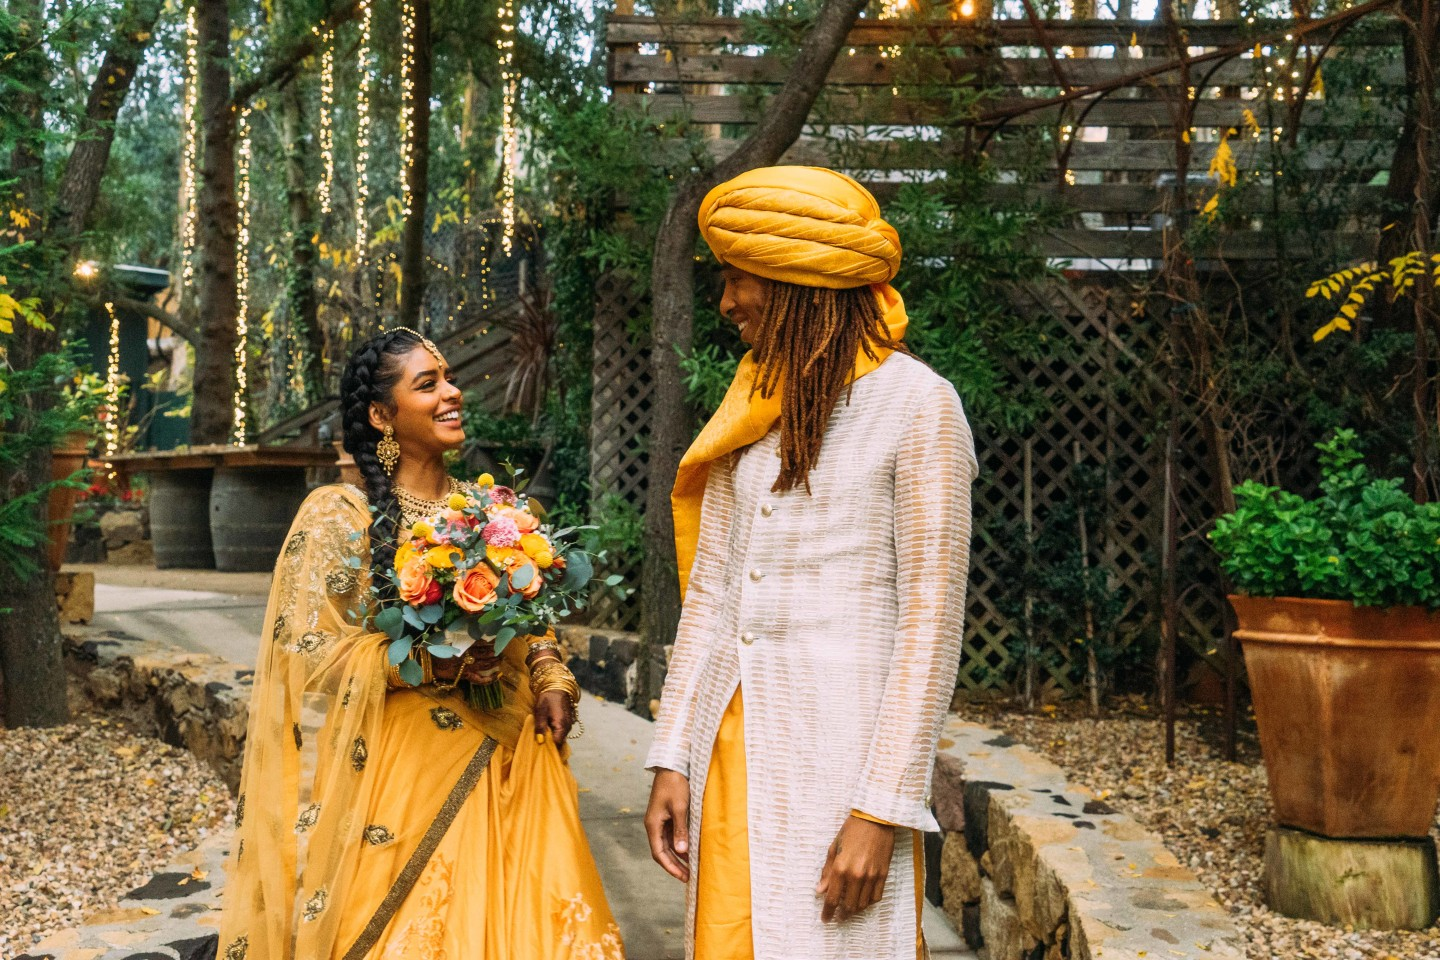 How This Young Couple Planned A Dream Wedding The Fader